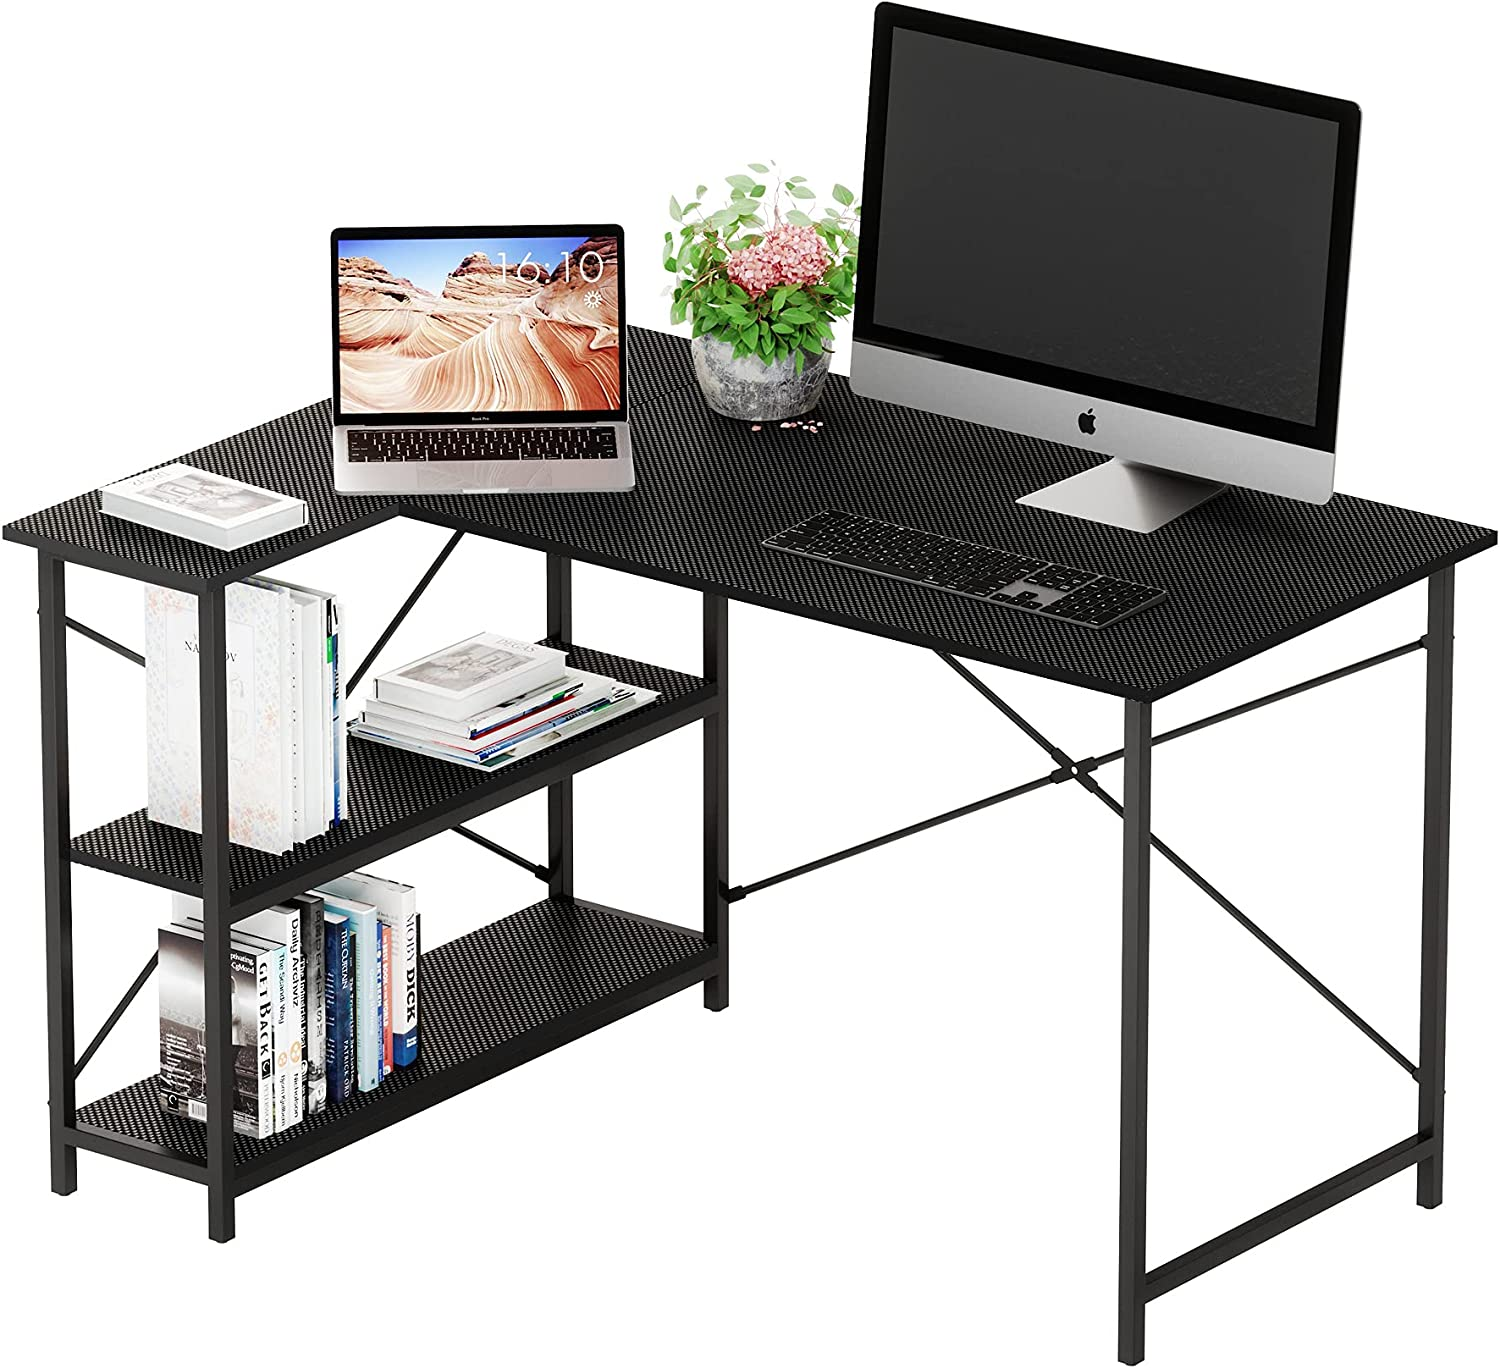 Bestier Small L-Shaped Desk with Storage Shelves 47 Inch Corner Desk with Shelves Writing Desk Table with Storage Tower Shelf Home Office Desk for Small Spaces P2 Wood (Black, 47 Inch)